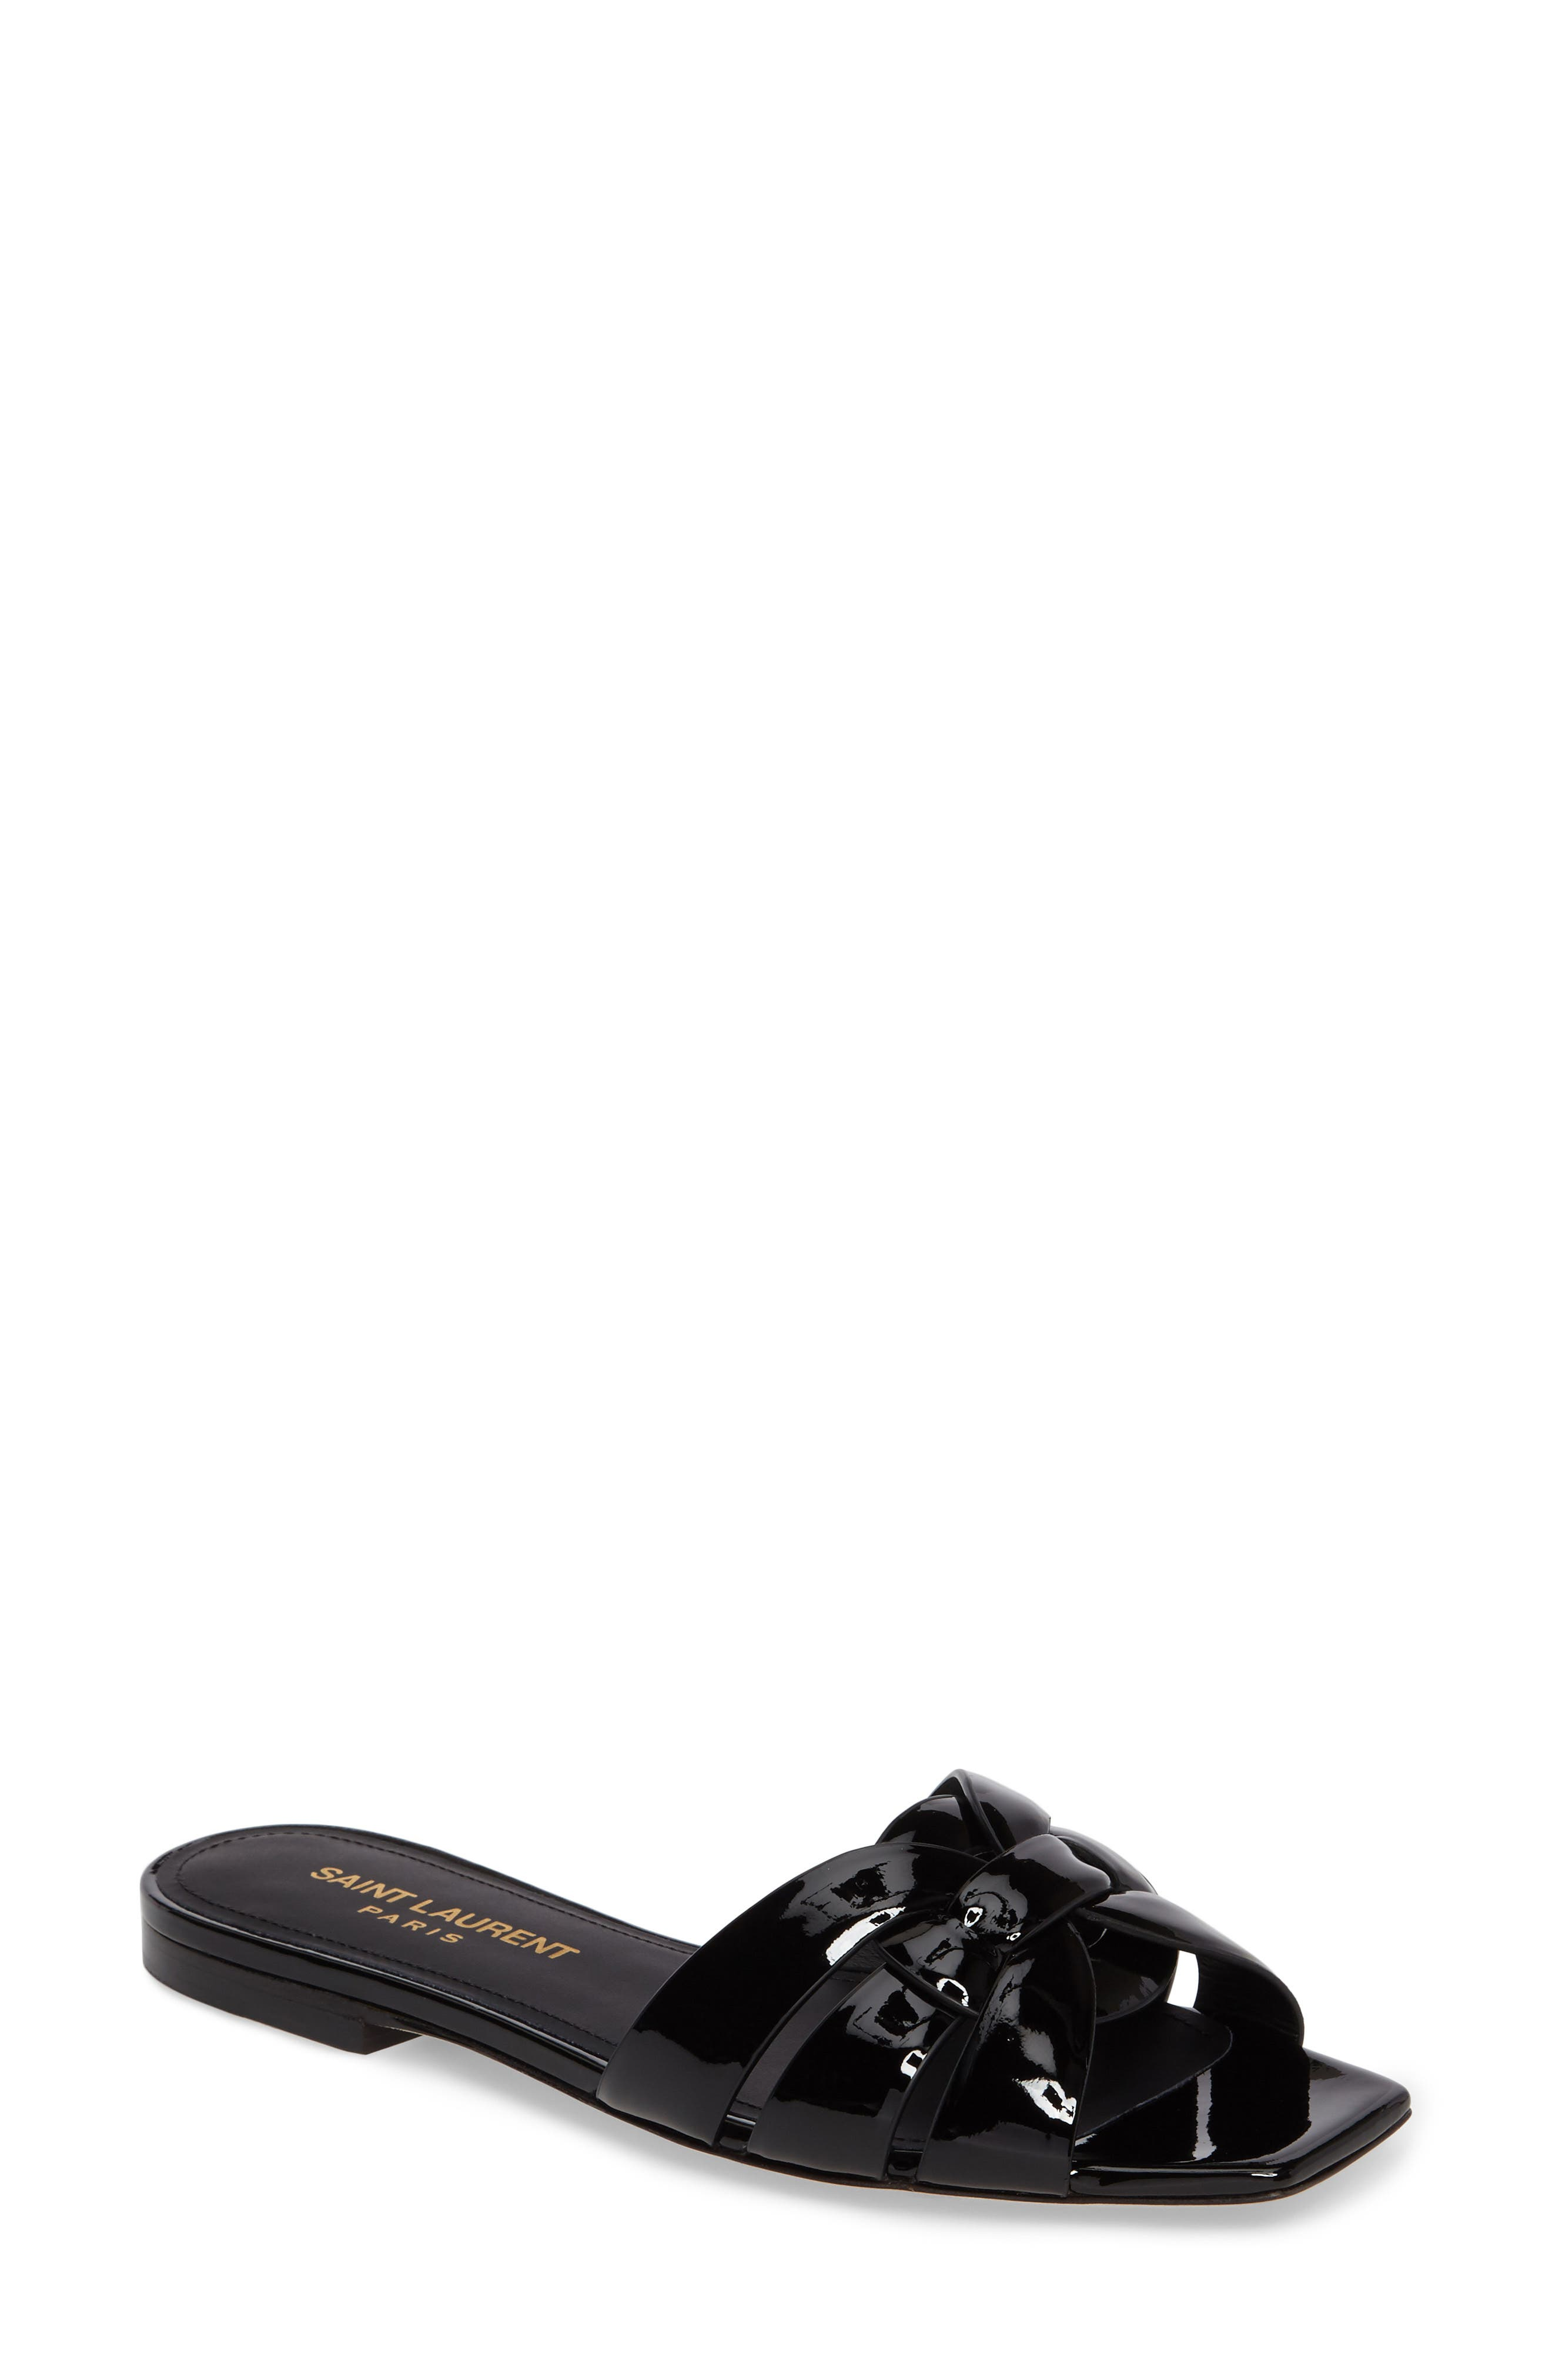 Saint Laurent Tribute Slide Sandal (Women)